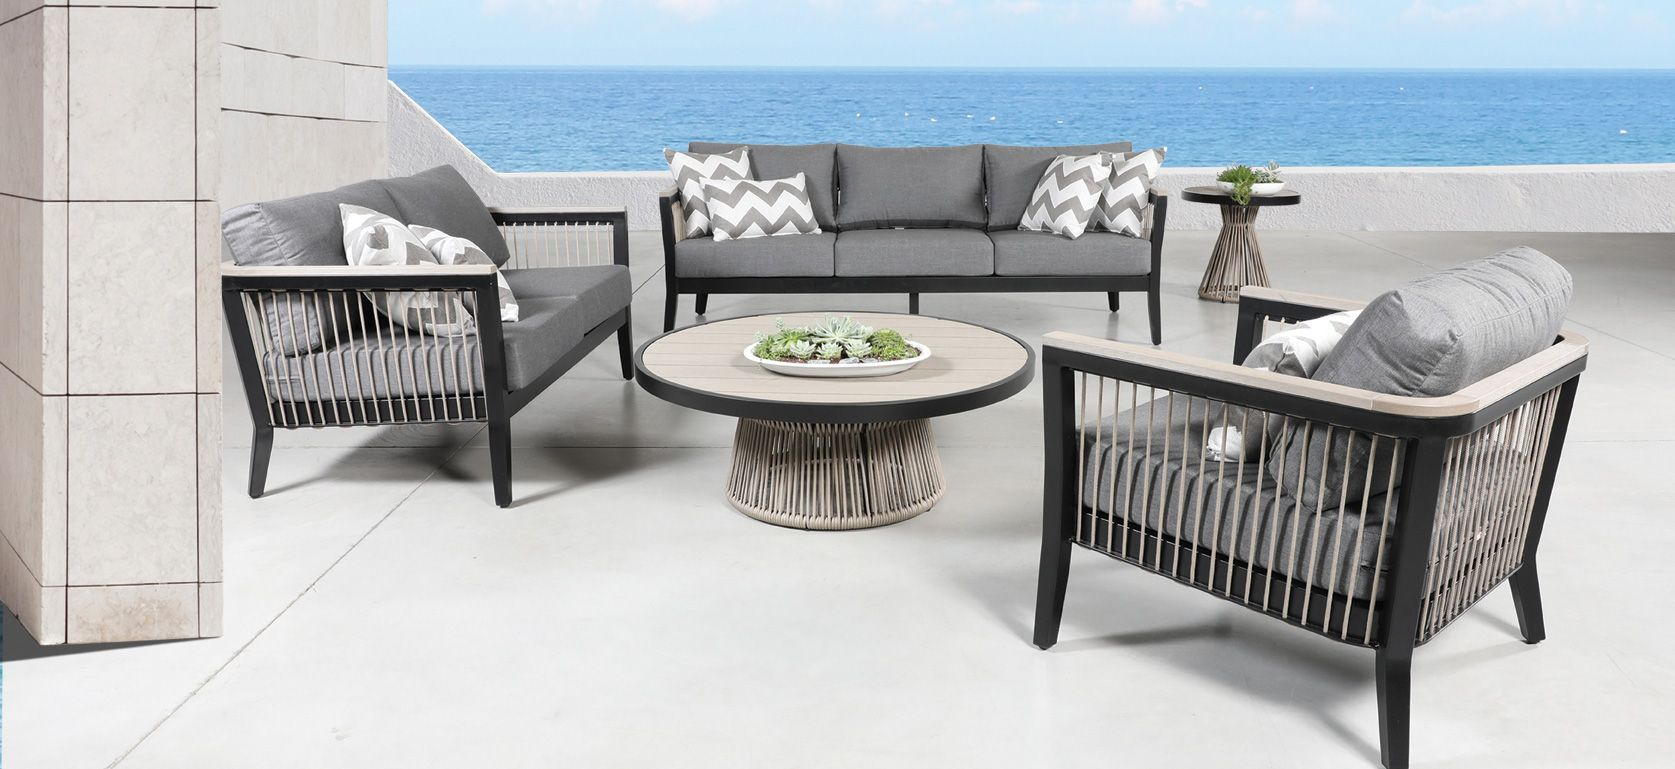 Shop Patio Furniture By Collection Cabanacoast Store Locator